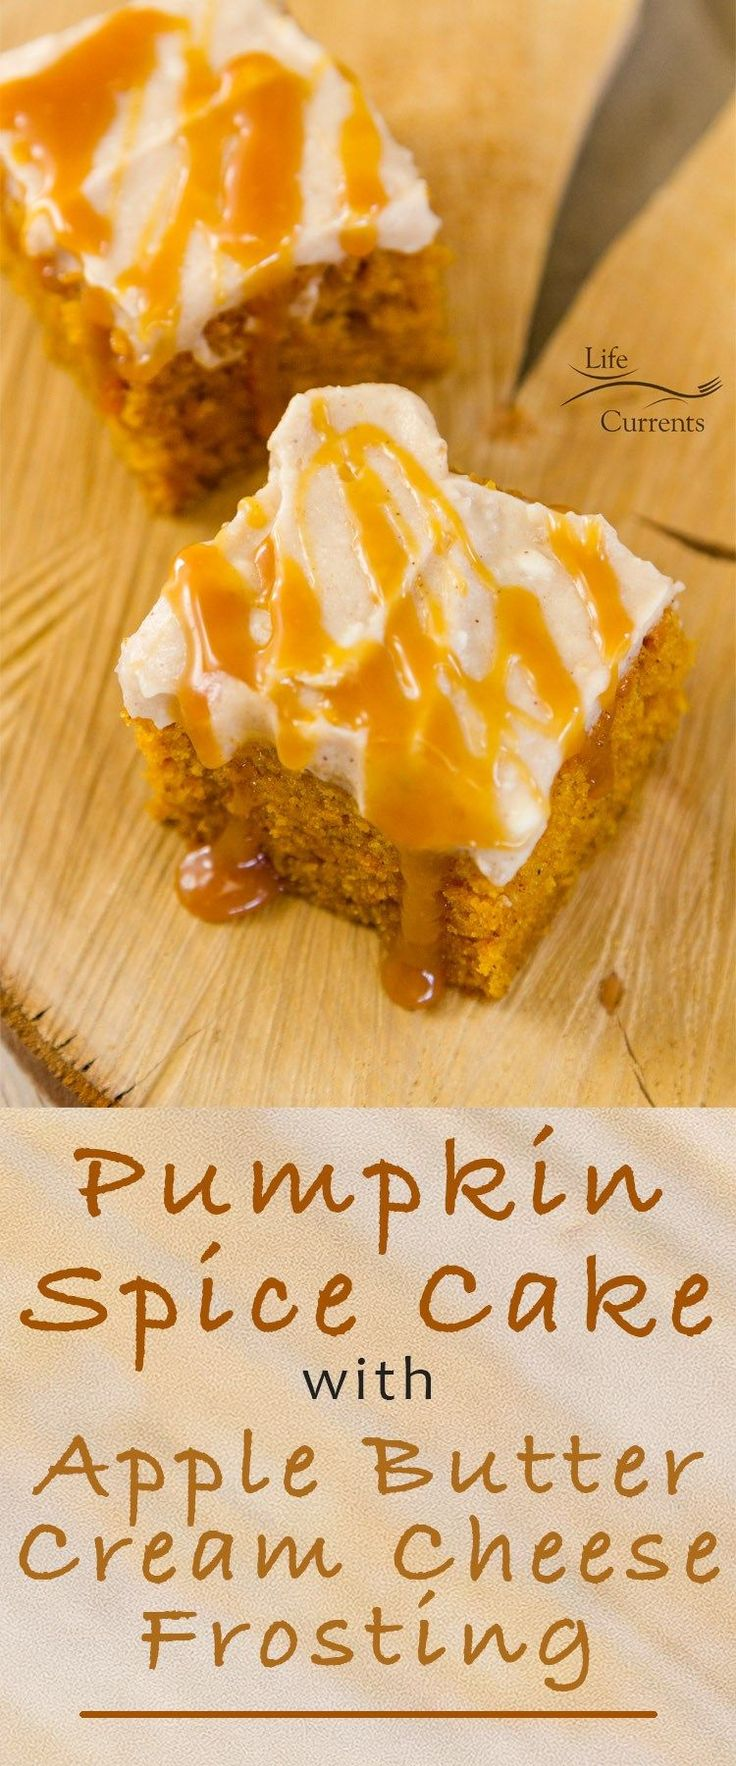 Pumpkin Spice Cake with Apple Butter Cream Cheese Frosting, it's a perfect fall dessert. All the things that make fall, well, fall are here!